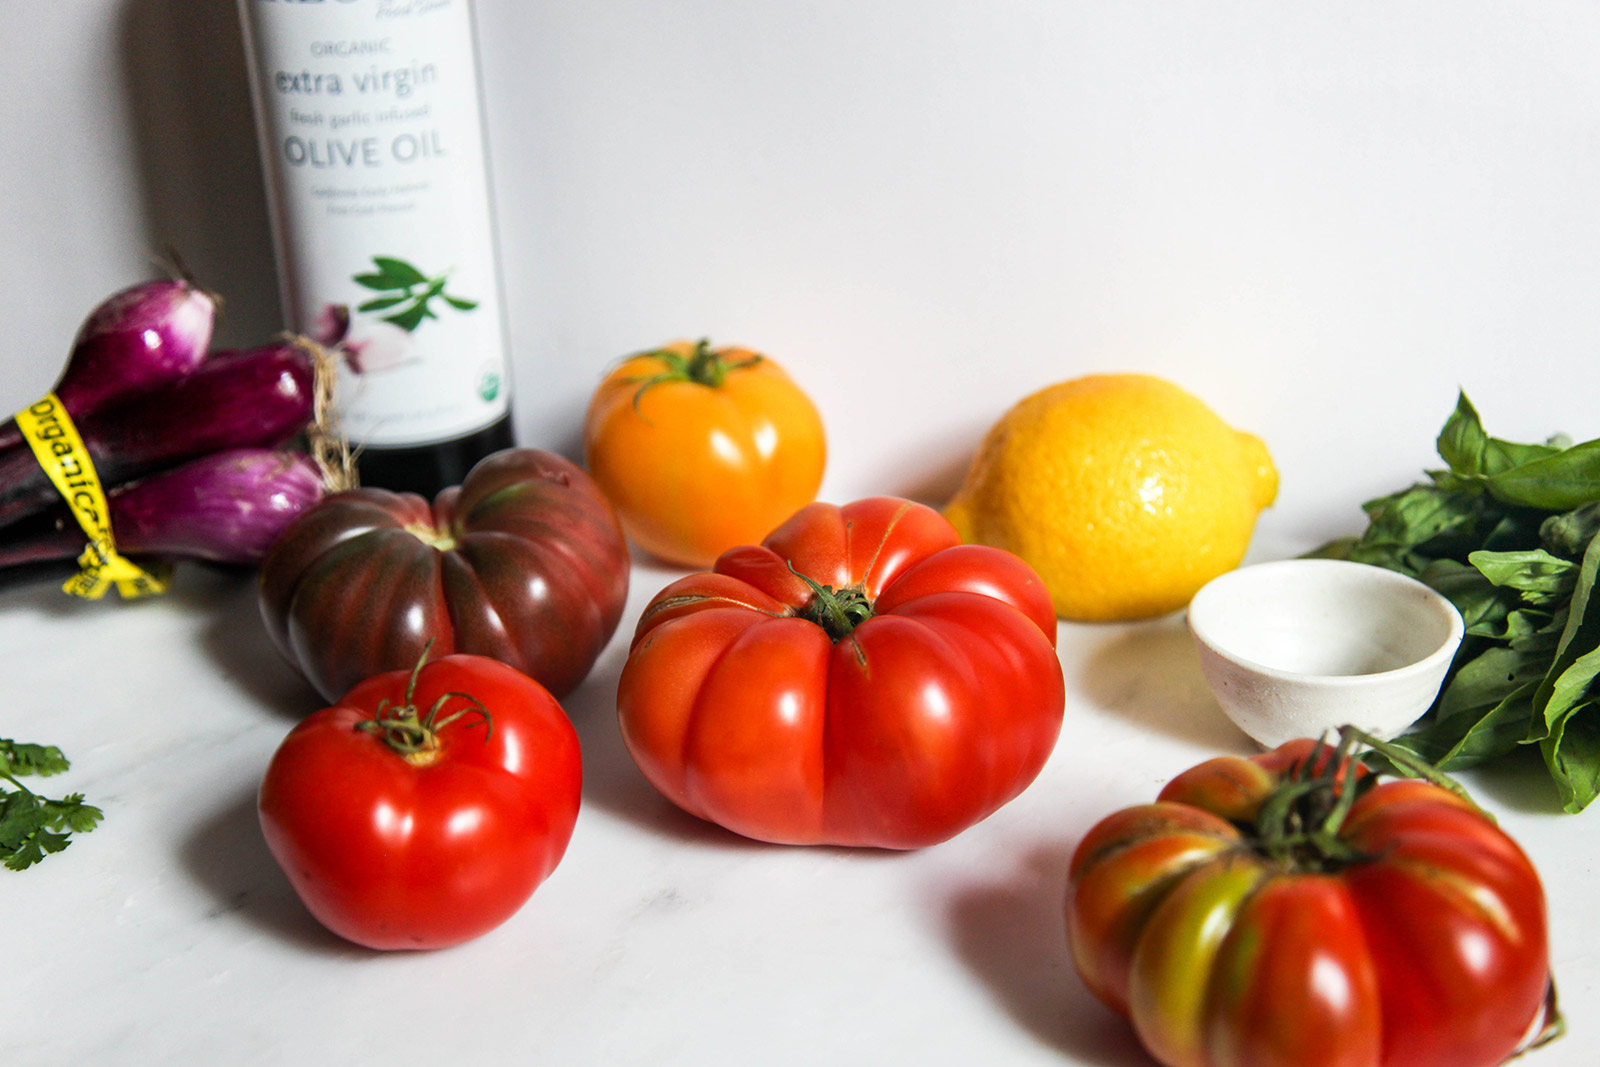 Ingredients for Portuguese-inspired Heirloom Tomato Salad